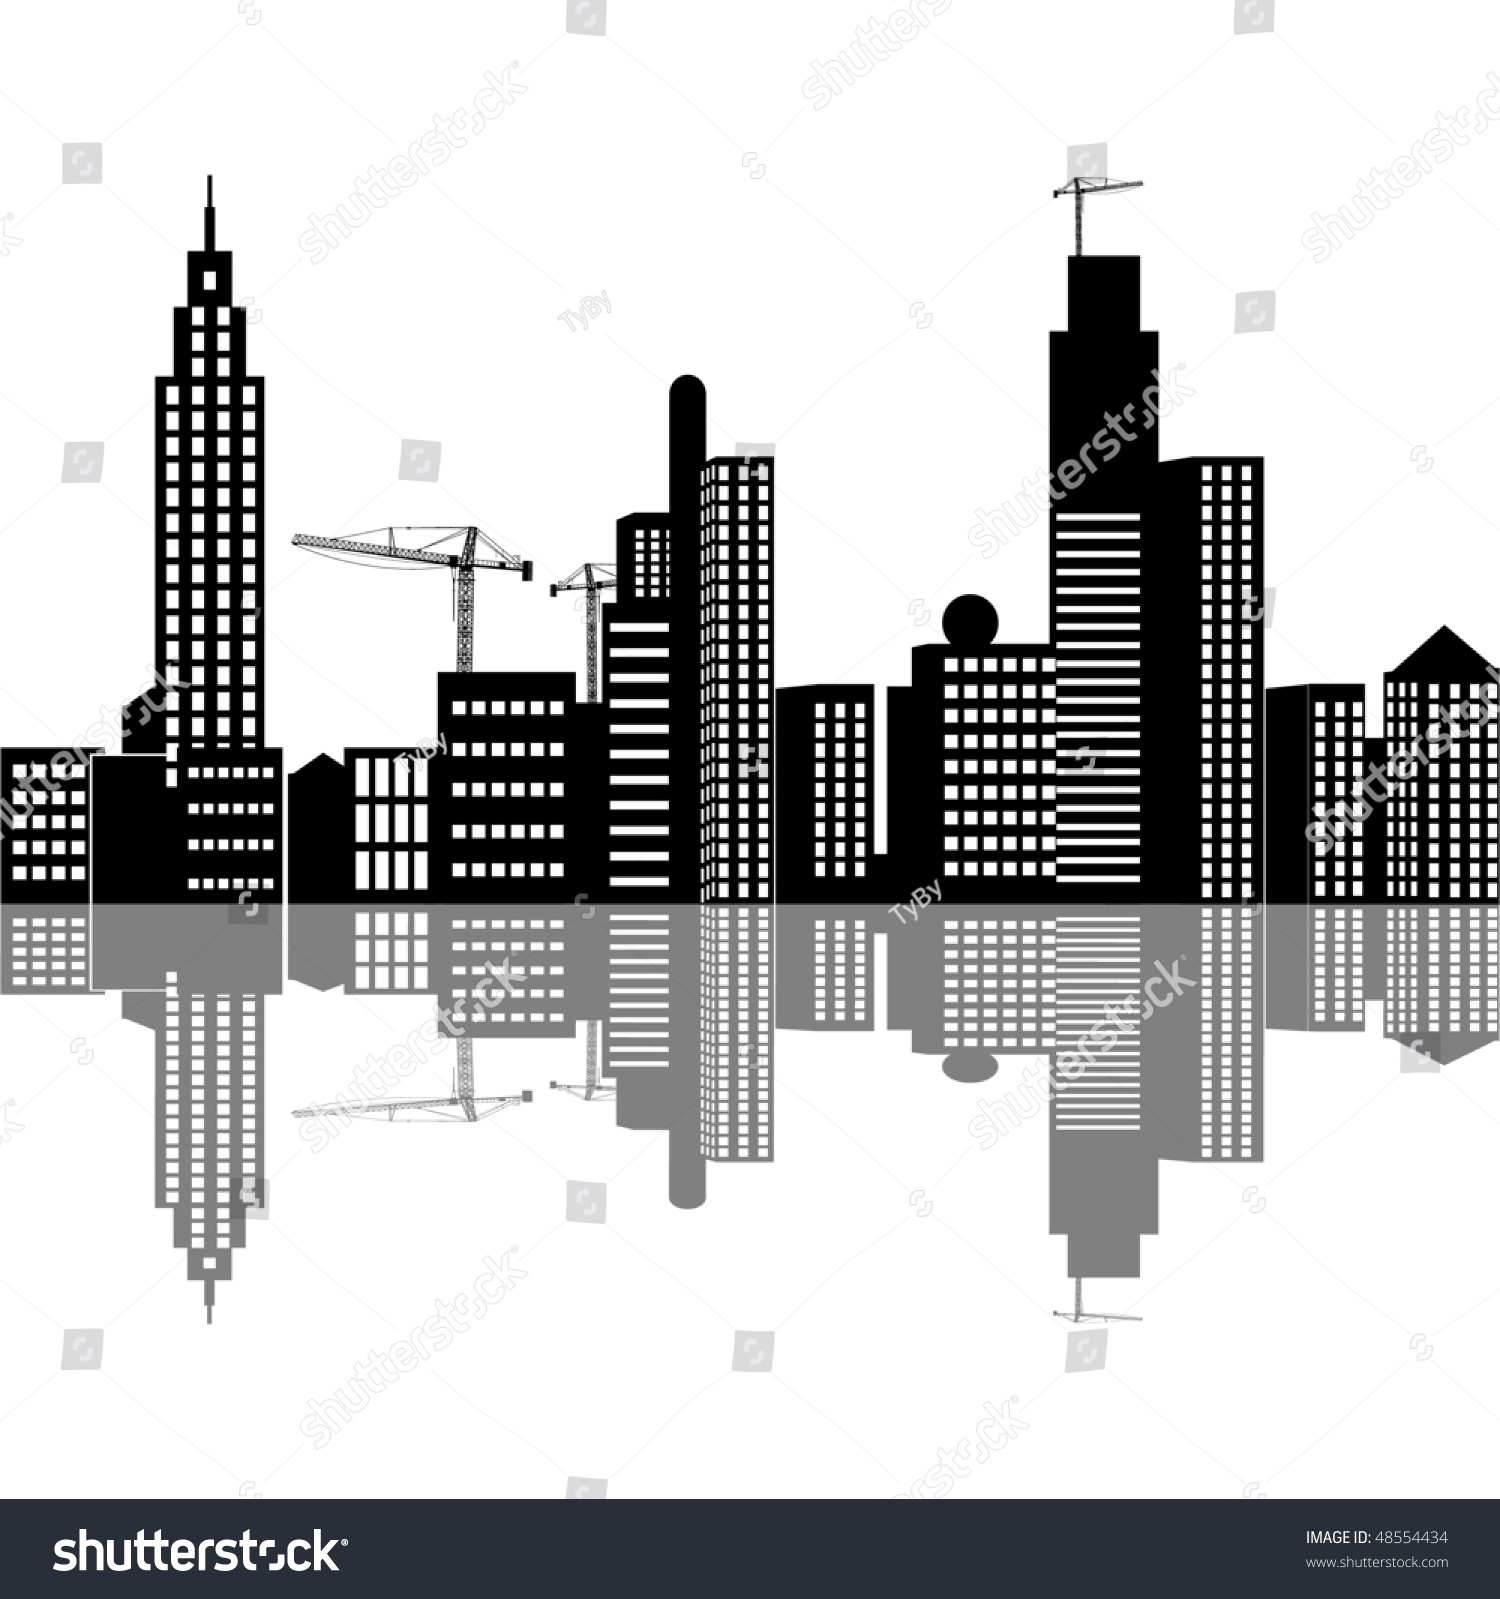 City Under Construction Stock Photo - Download Image Now ... |City Under Construction